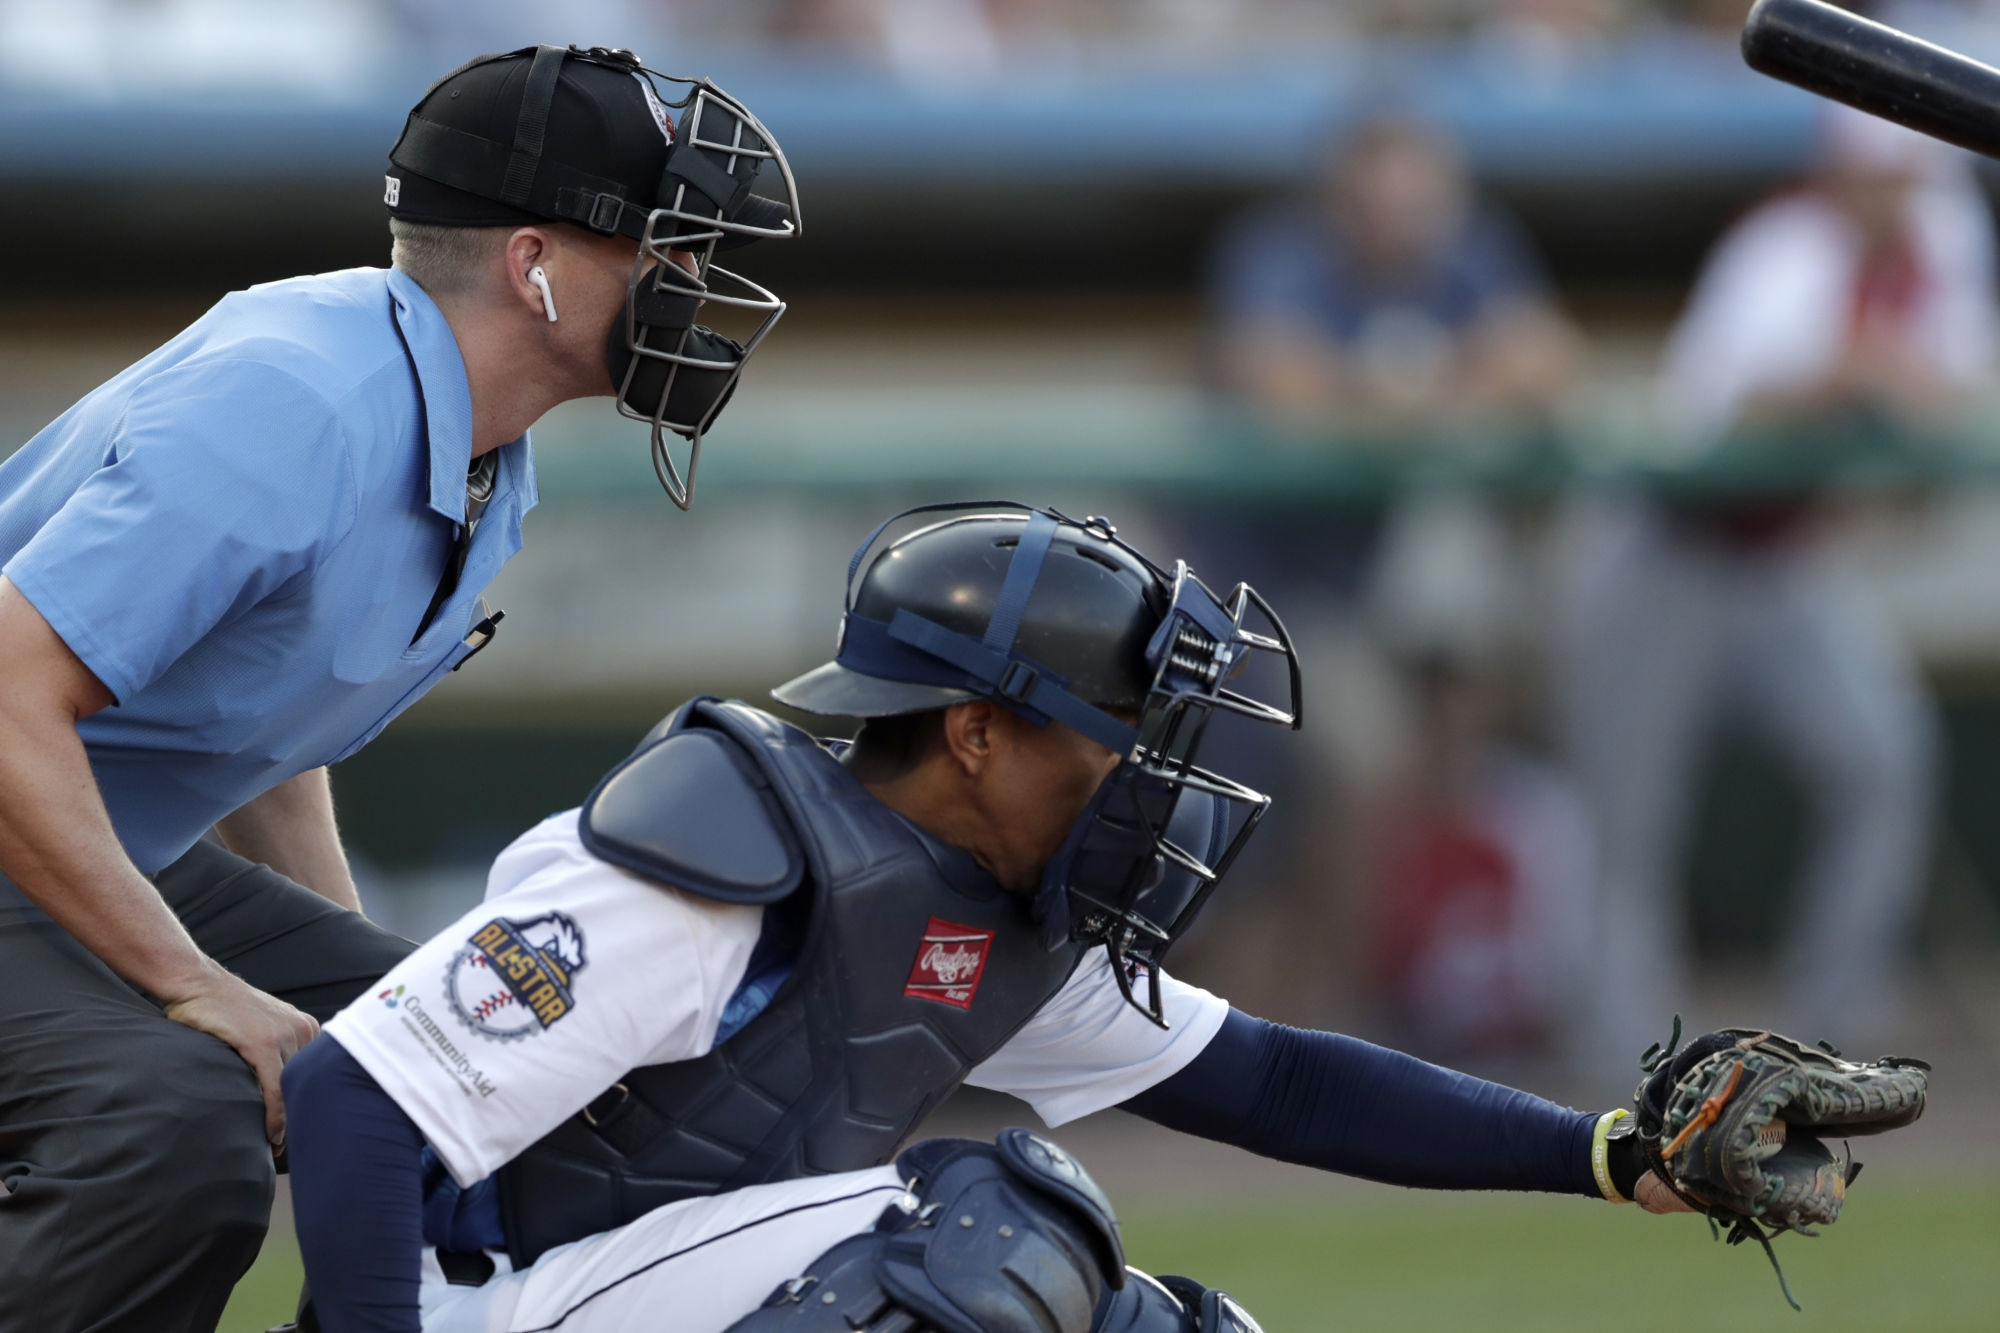 'Robot umpire' helps call balls and strikes in Atlantic League All-Star Game | DeviceDaily.com